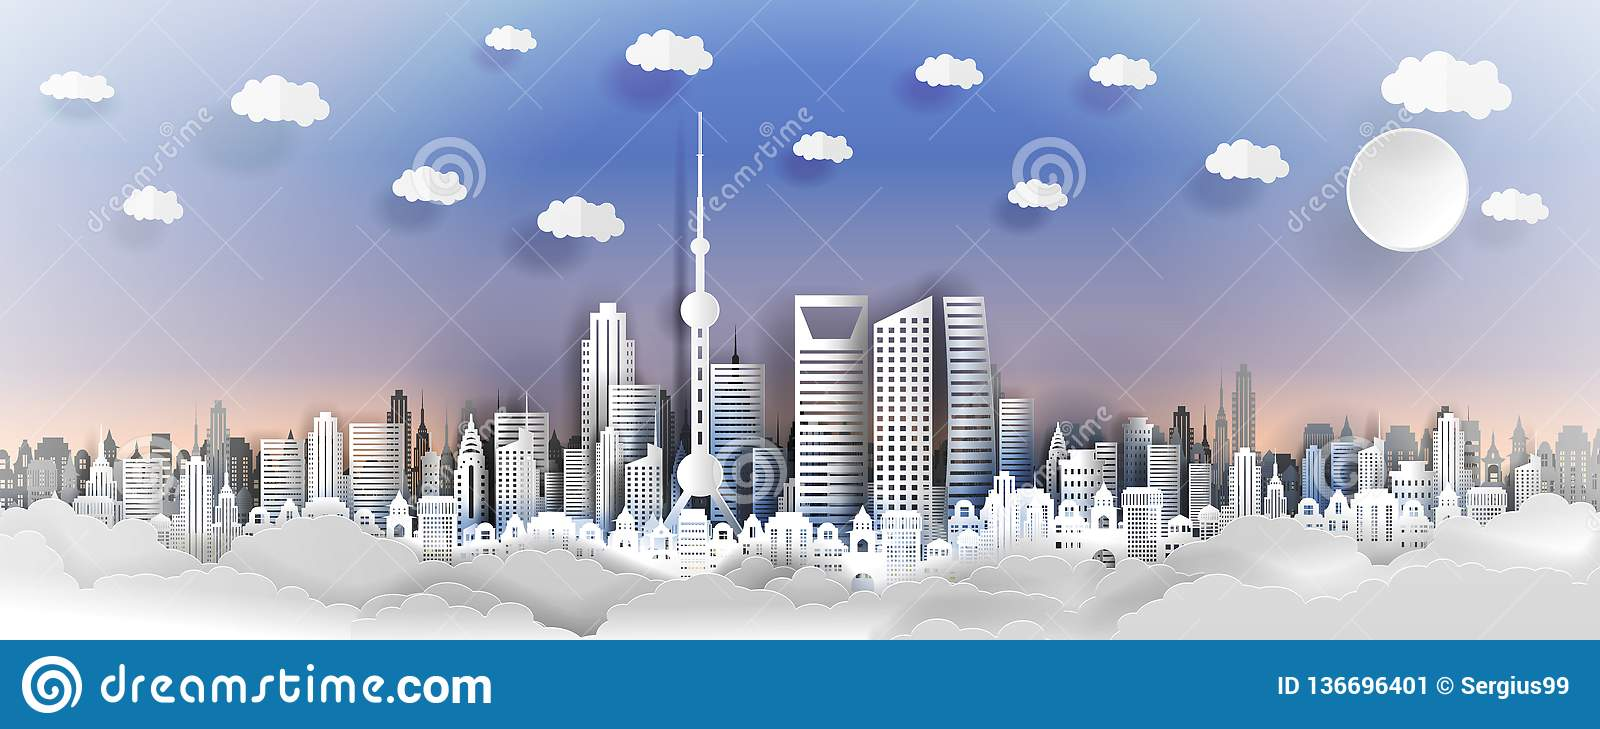 Shanhai city concept, China. Paper art city on back with buildings, towers, clouds.